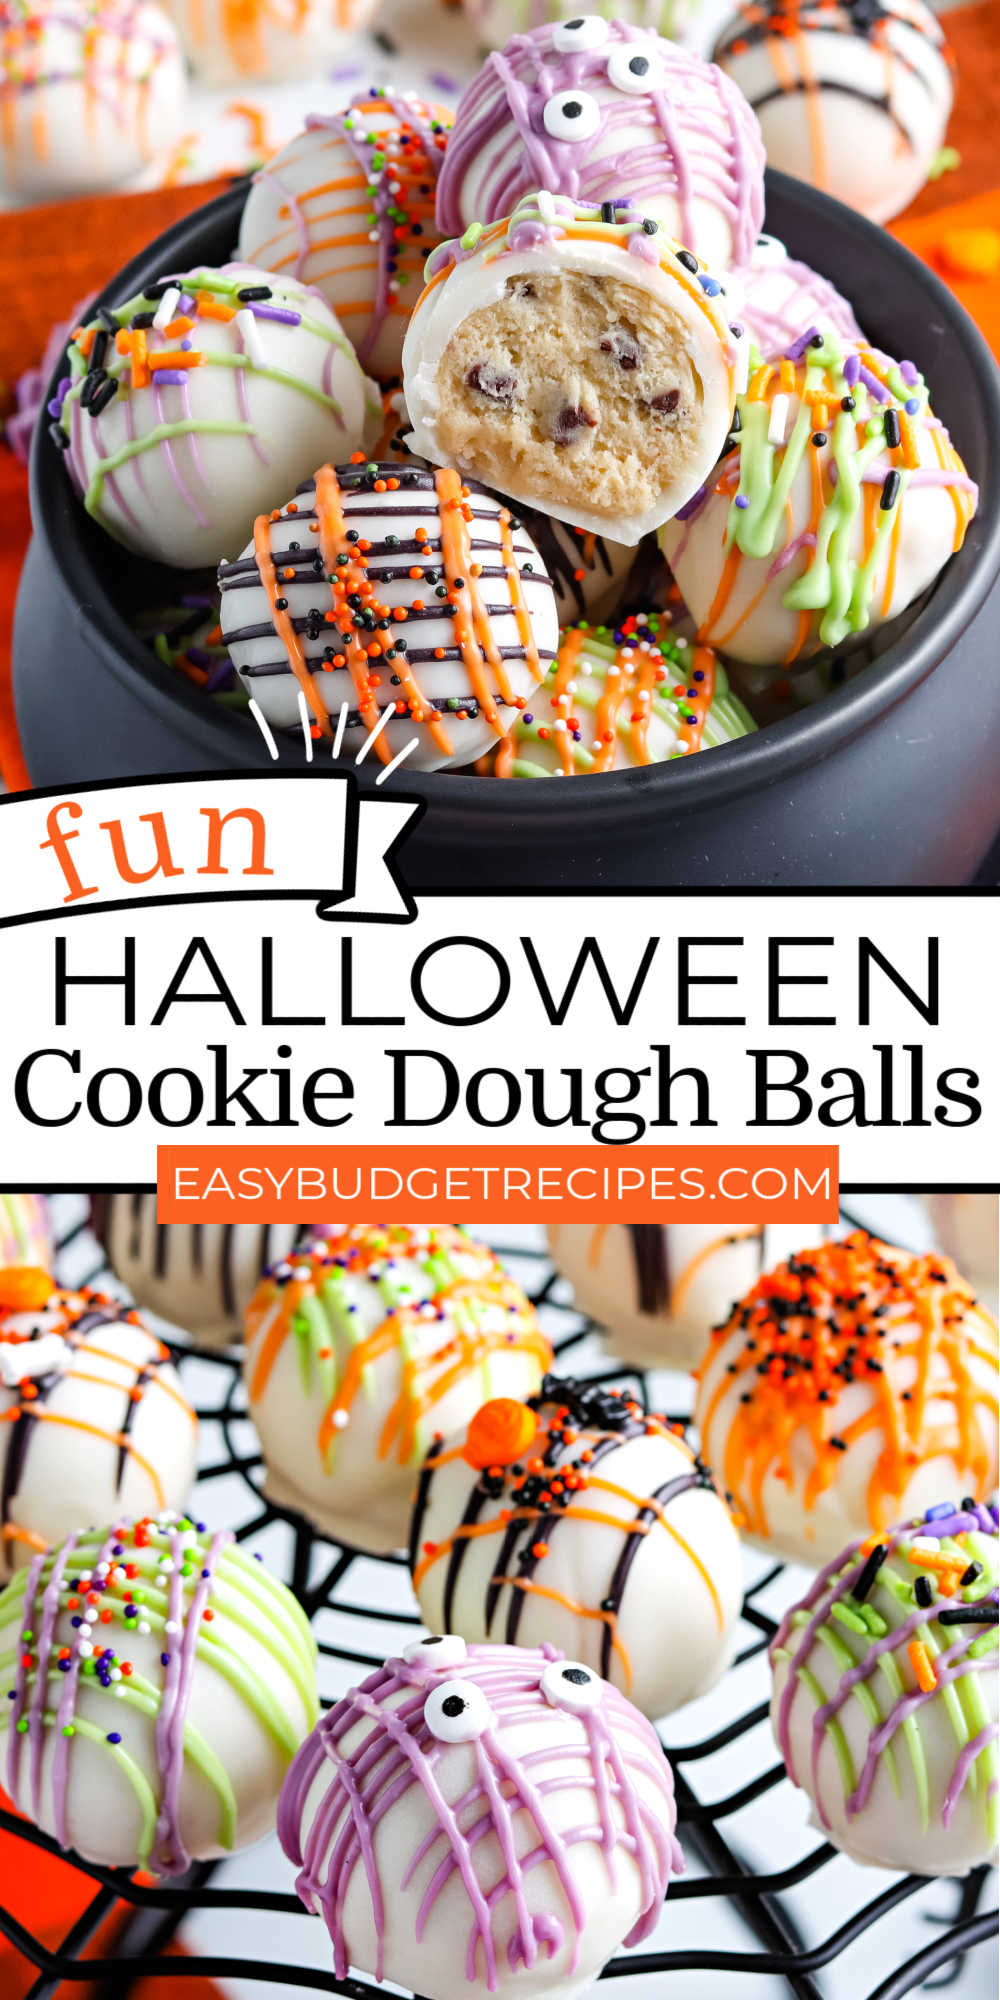 These Halloween Cookie Dough Balls are an easy no-bake treat that everyone loves. They're chunks of chocolate chip cookie dough that are dipped in chocolate and decorated for Halloween.  via @easybudgetrecipes